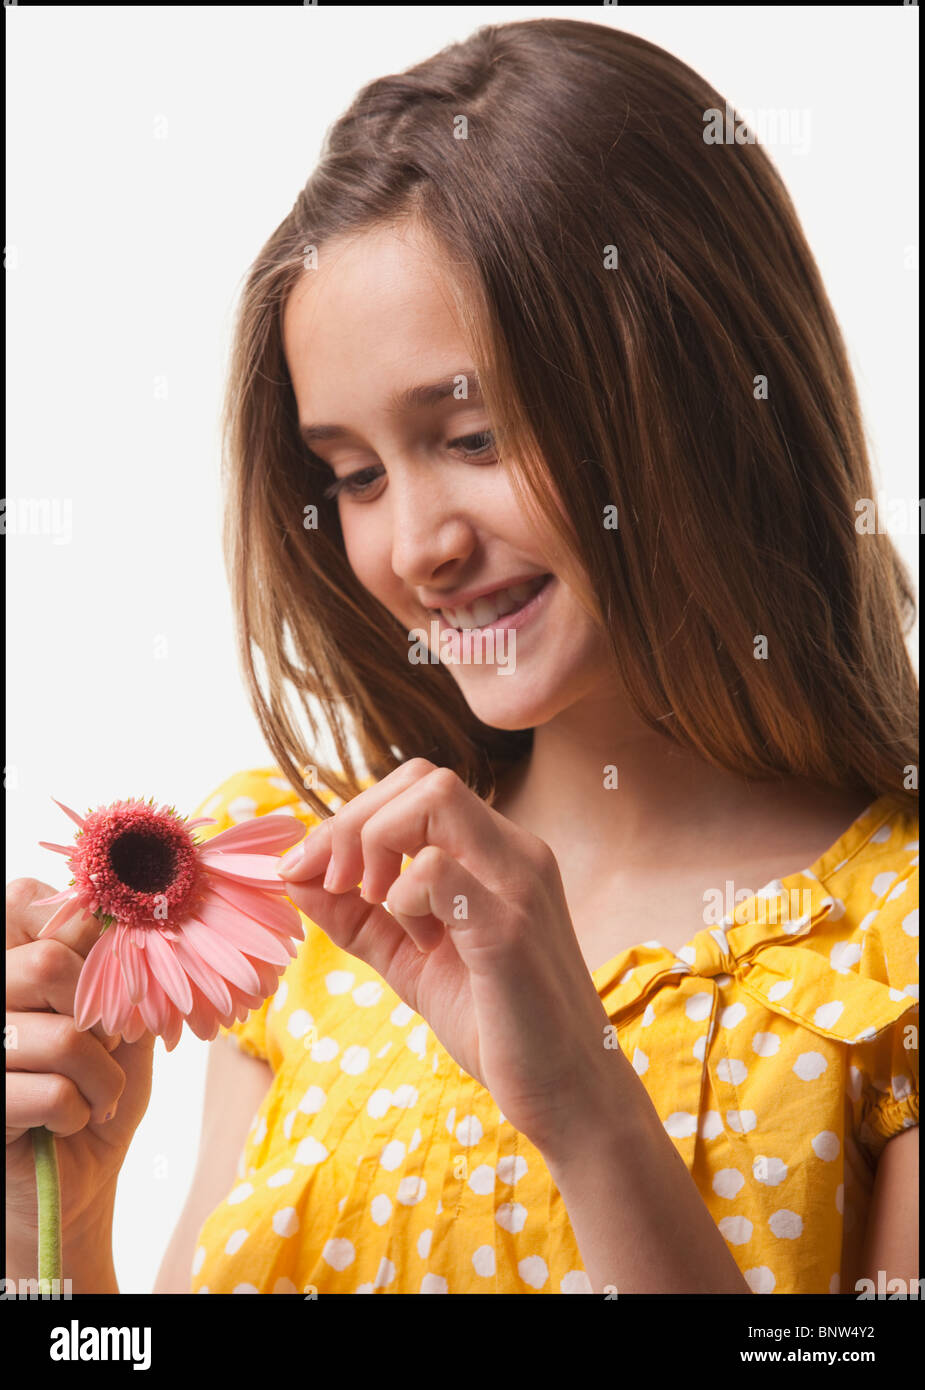 Teenage girl picking petals off of a flower - Stock Image